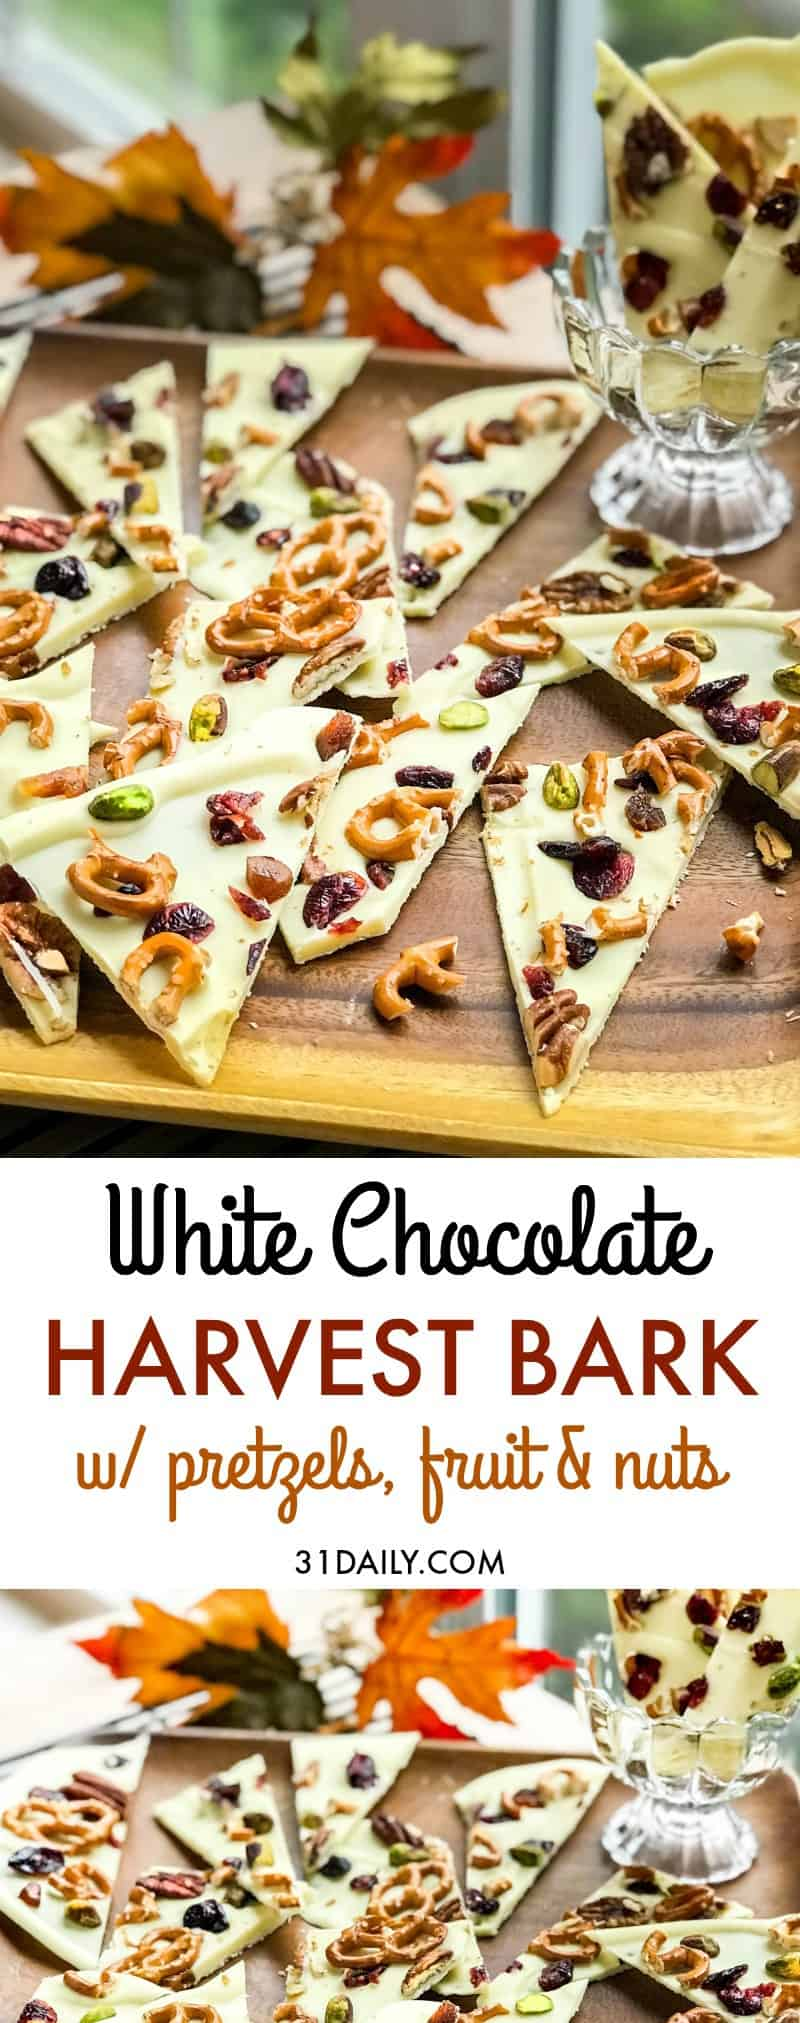 Harvest White Chocolate Bark with Pretzels, Fruits and Nuts   31Daily.com